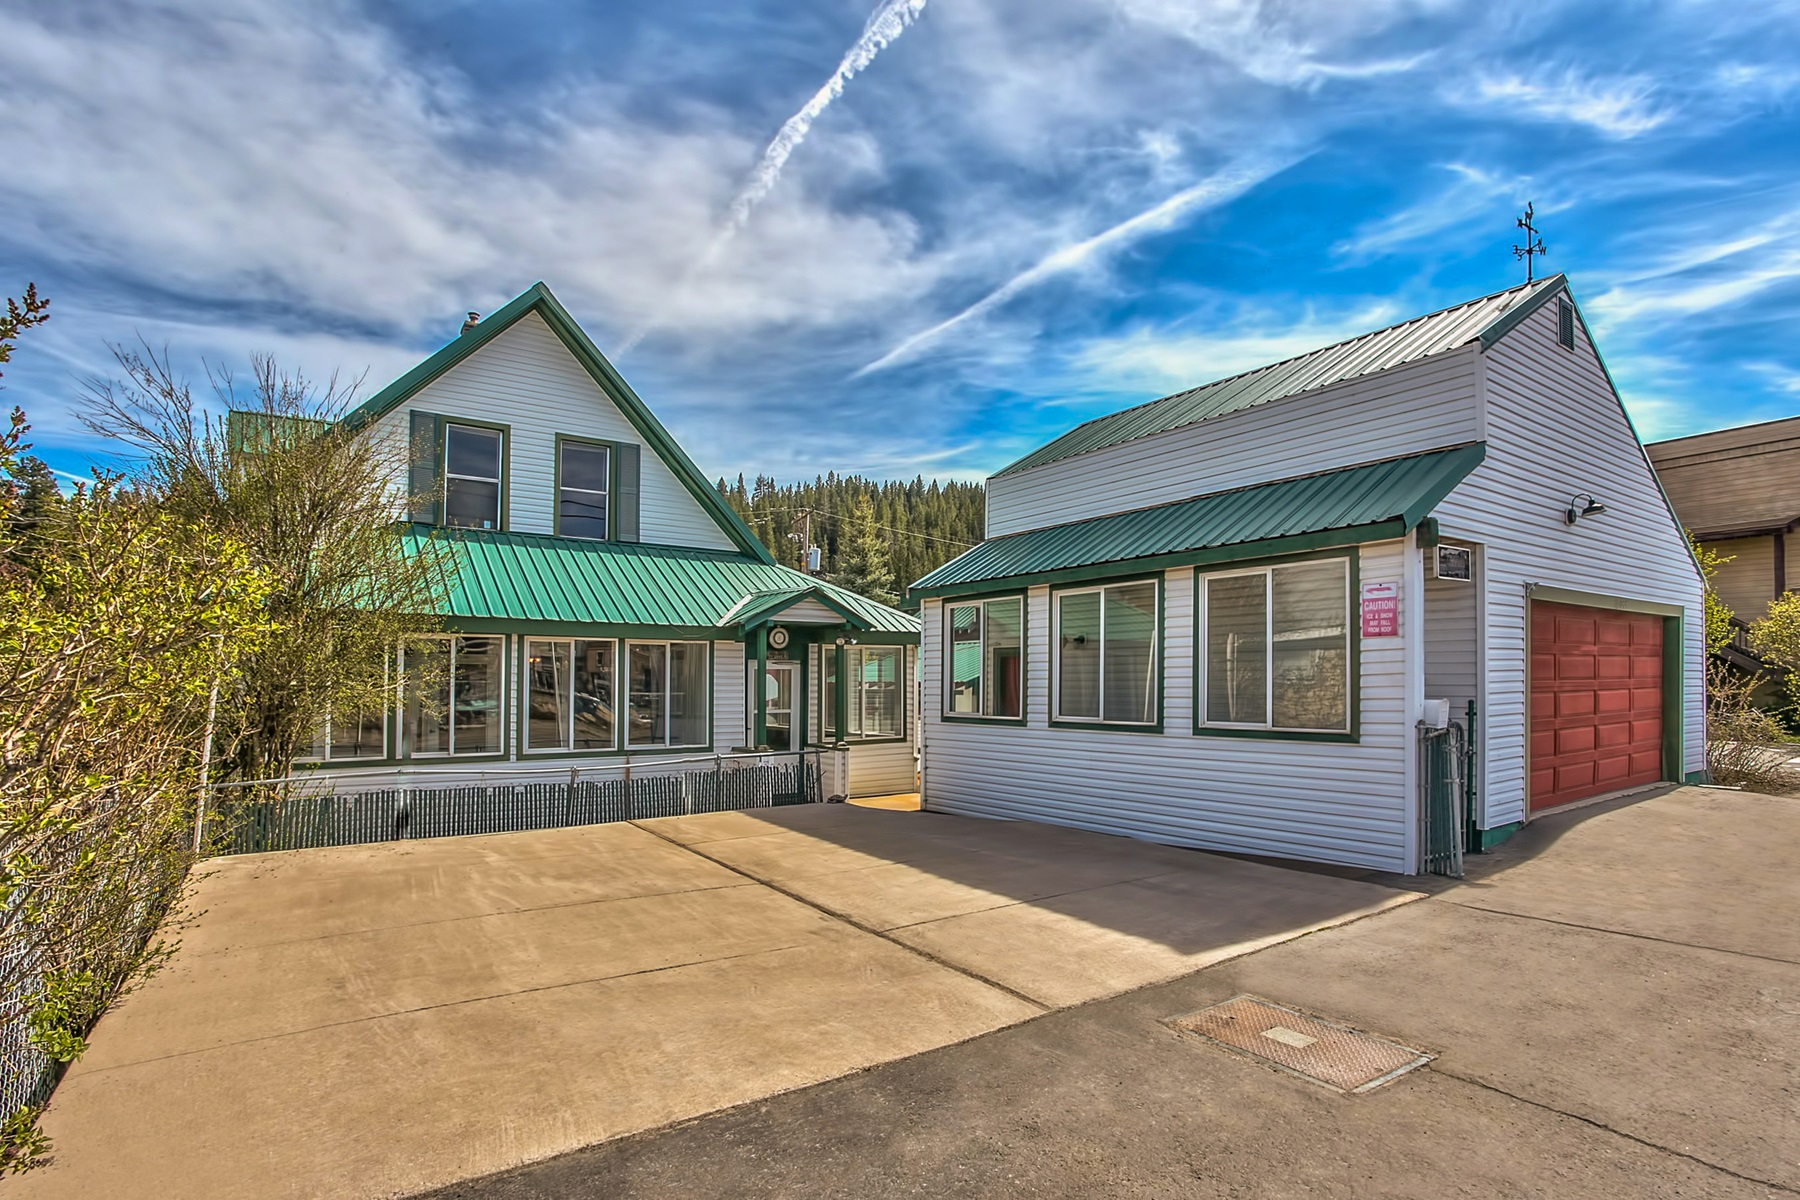 Single Family Home for Active at 10055 West River Street Truckee, California 96161 United States